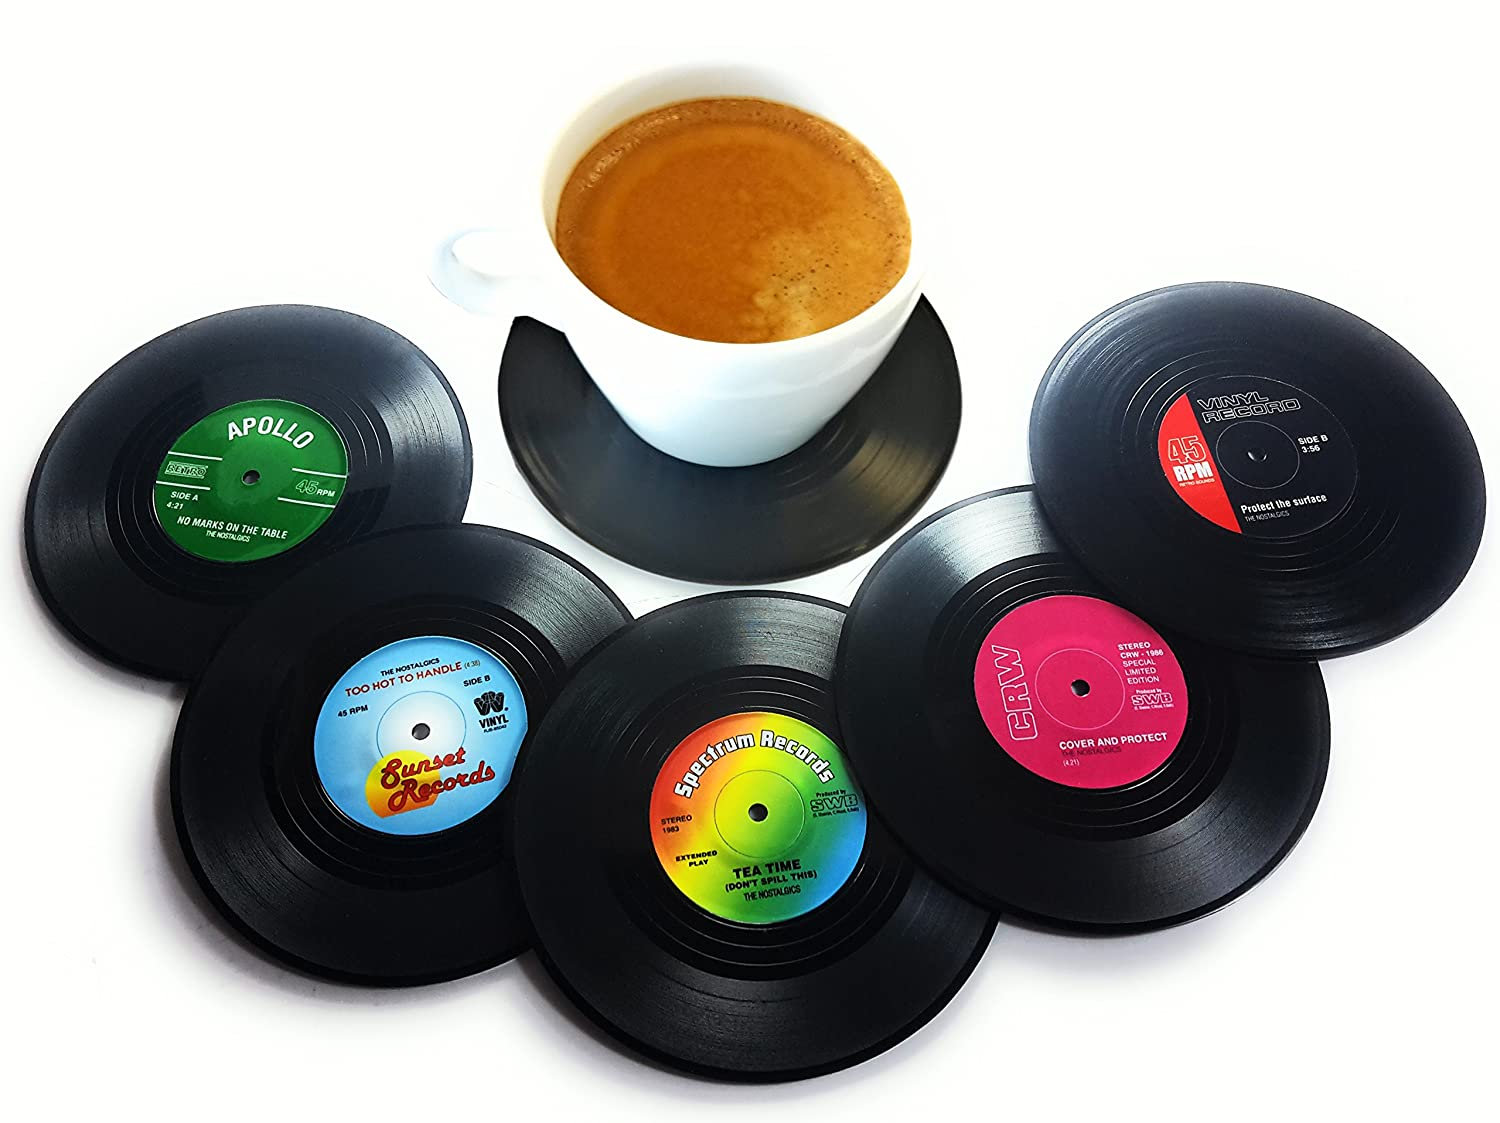 Vinyl Record Disc Coasters - Set of 6 with Funny, Colorful Labels